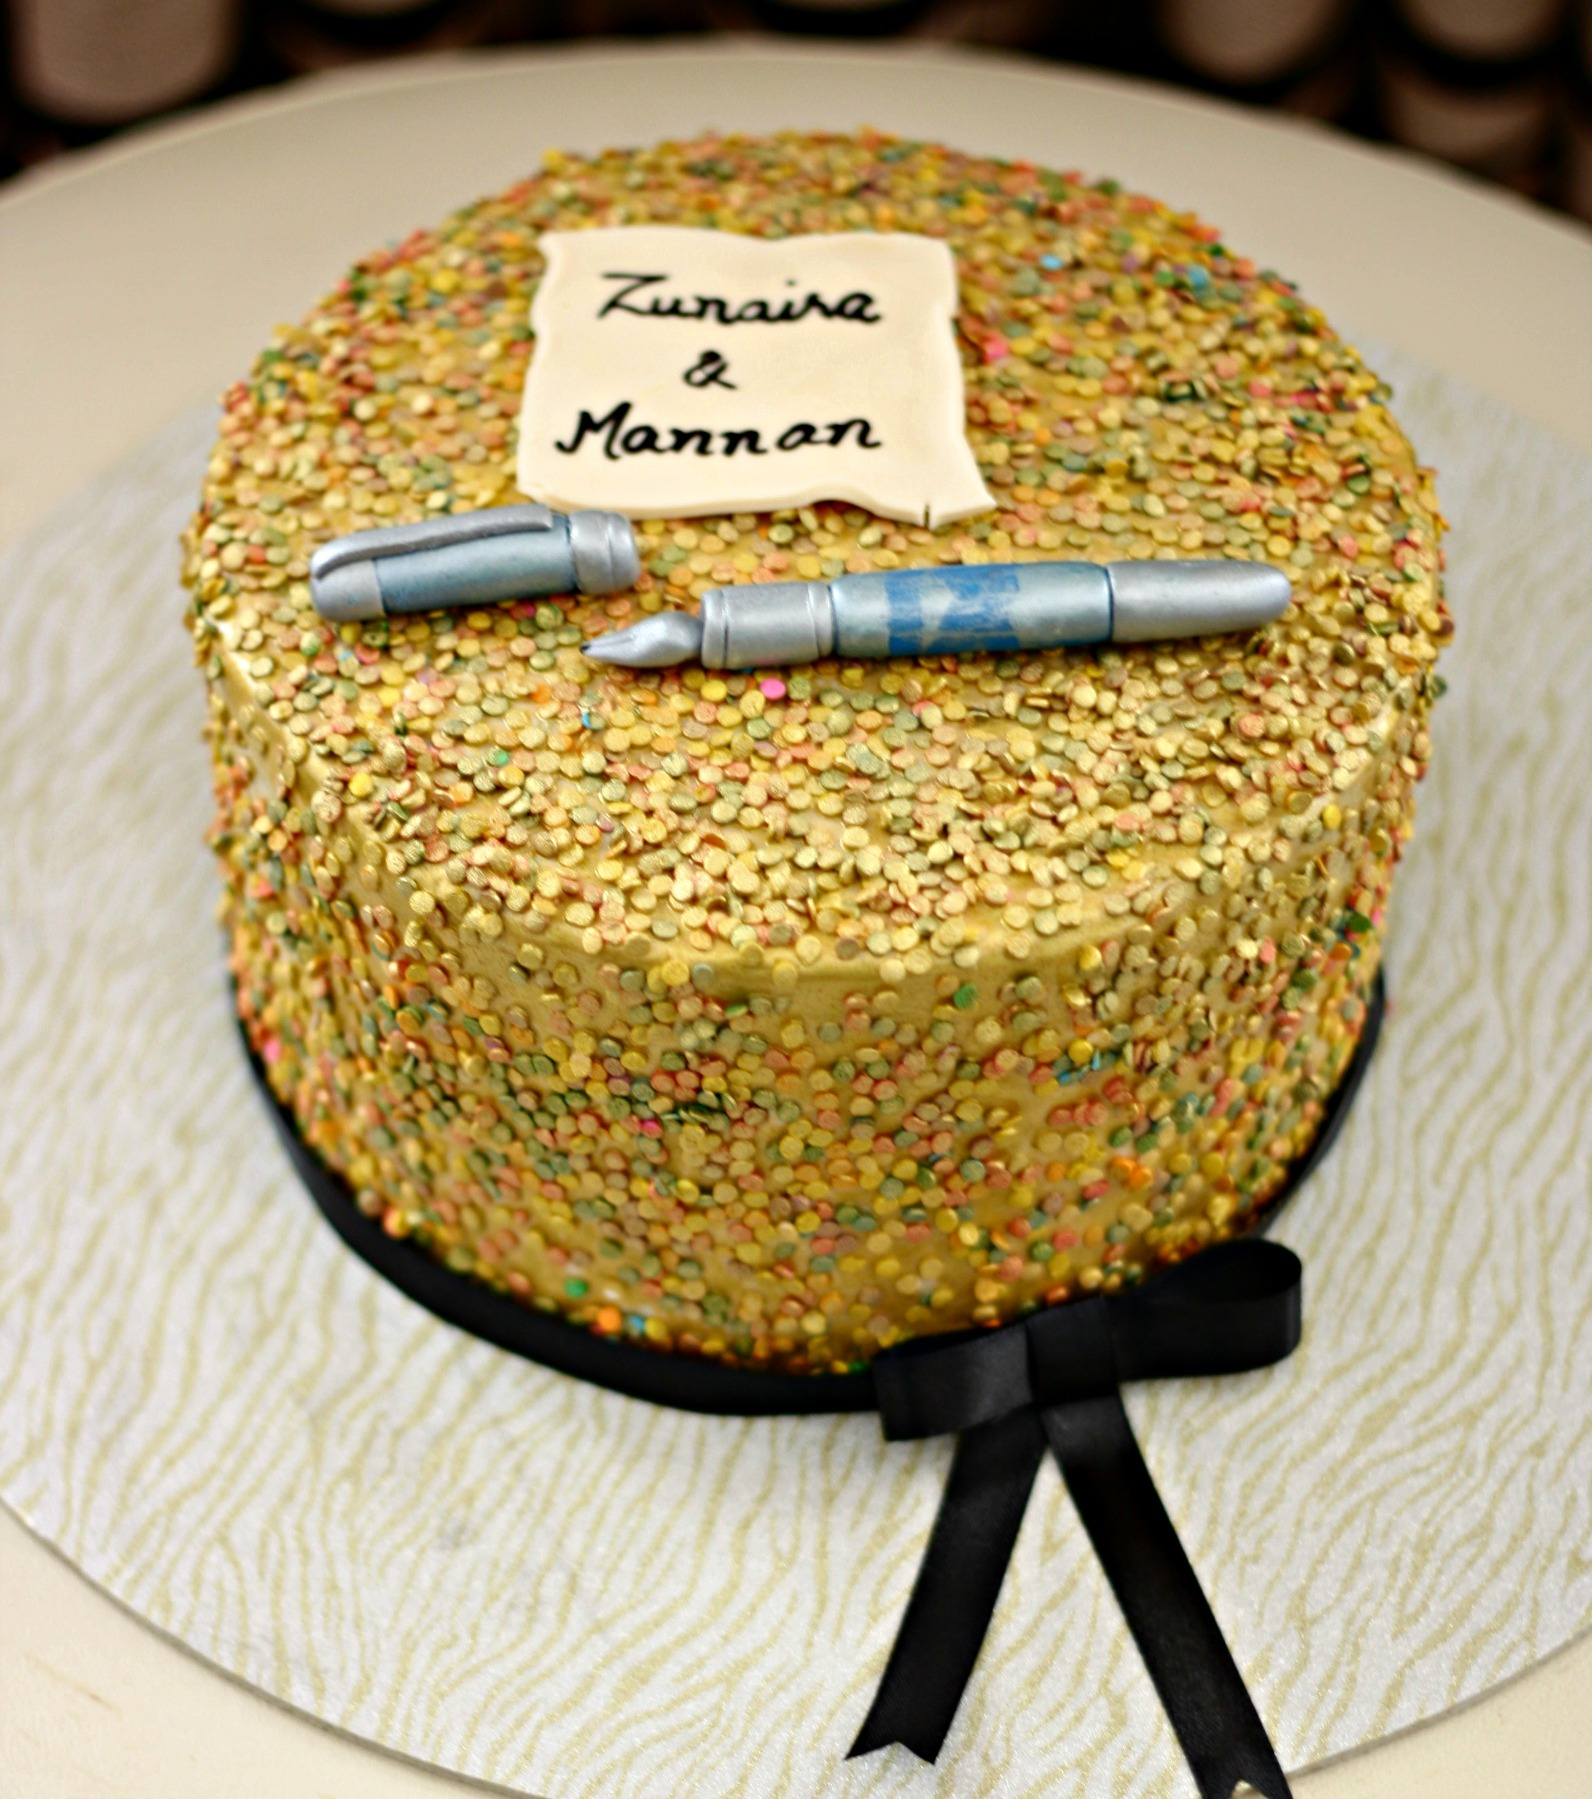 personalized anniversary cake for zunaira & mannan